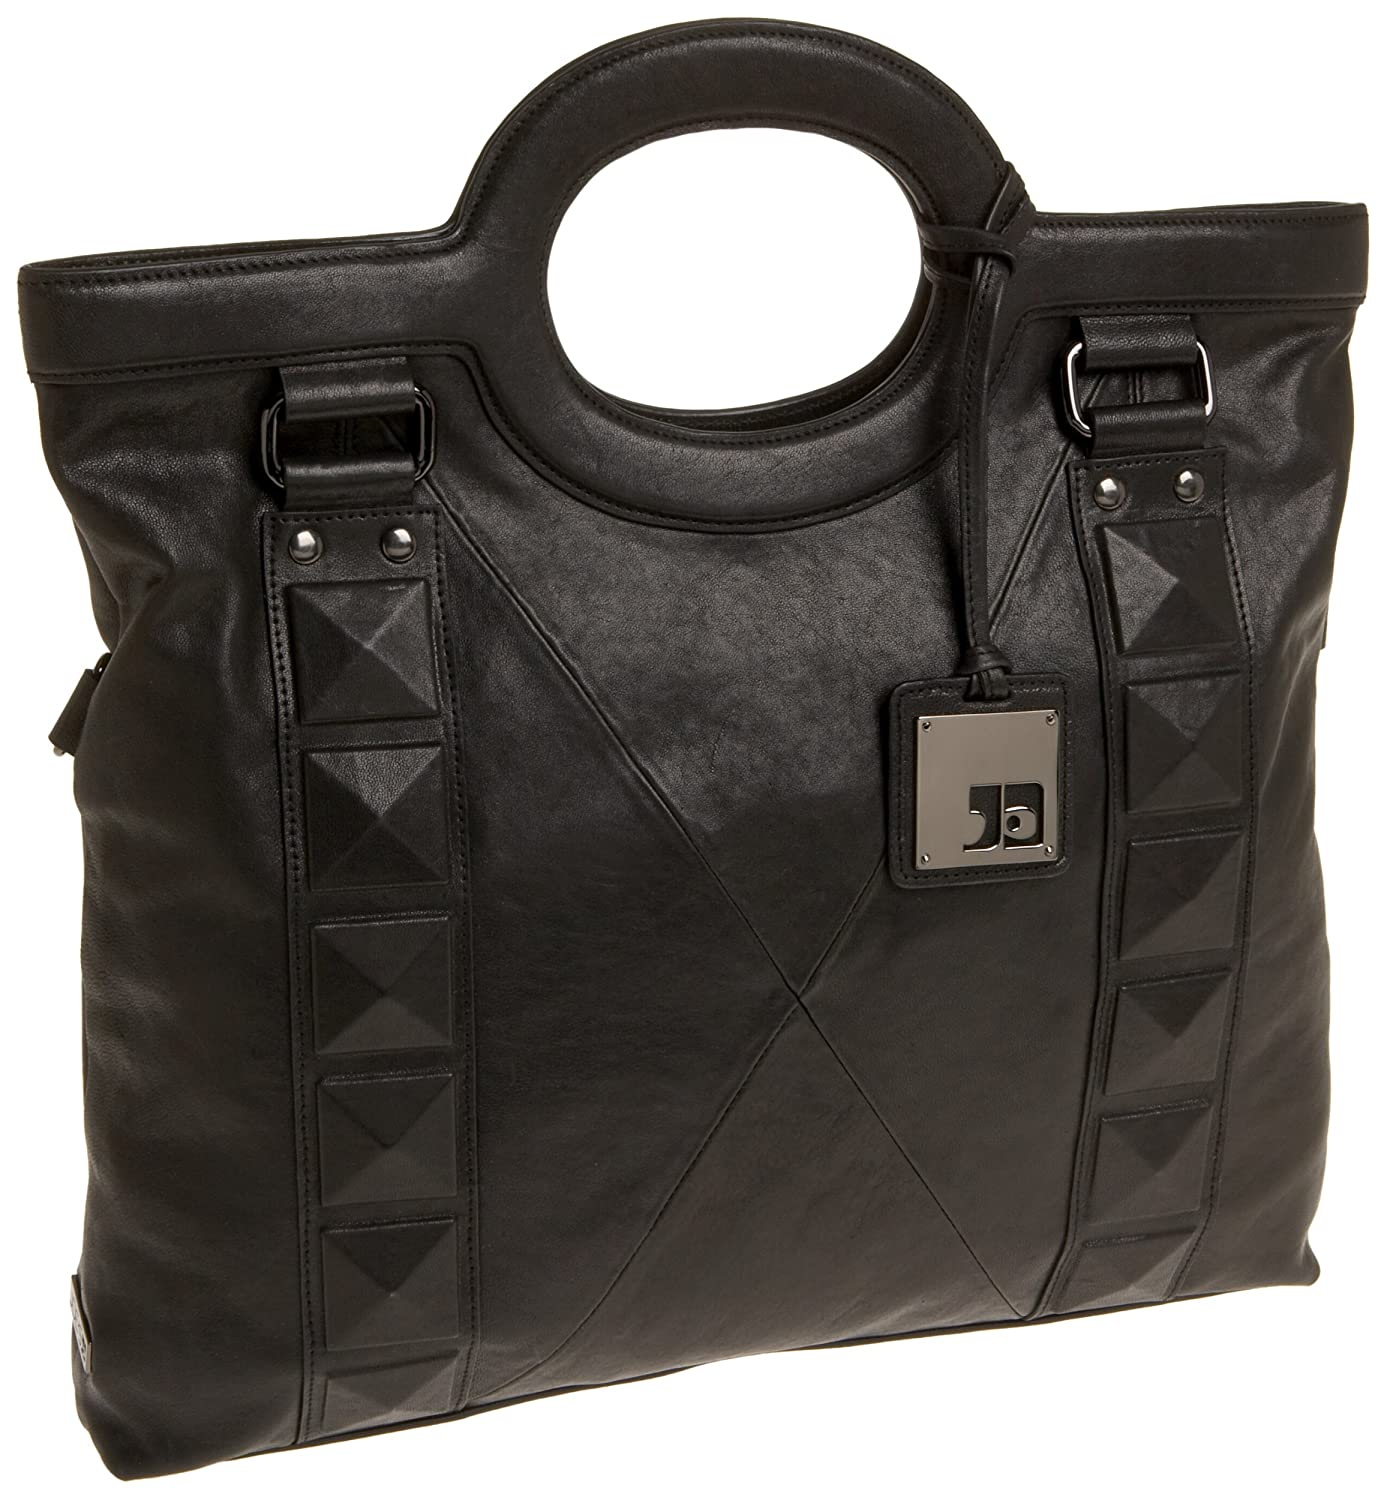 Endless.com: Joe's Jeans Got it Covered Convertible Tote: Categories - Free Overnight Shipping & Return Shipping from endless.com